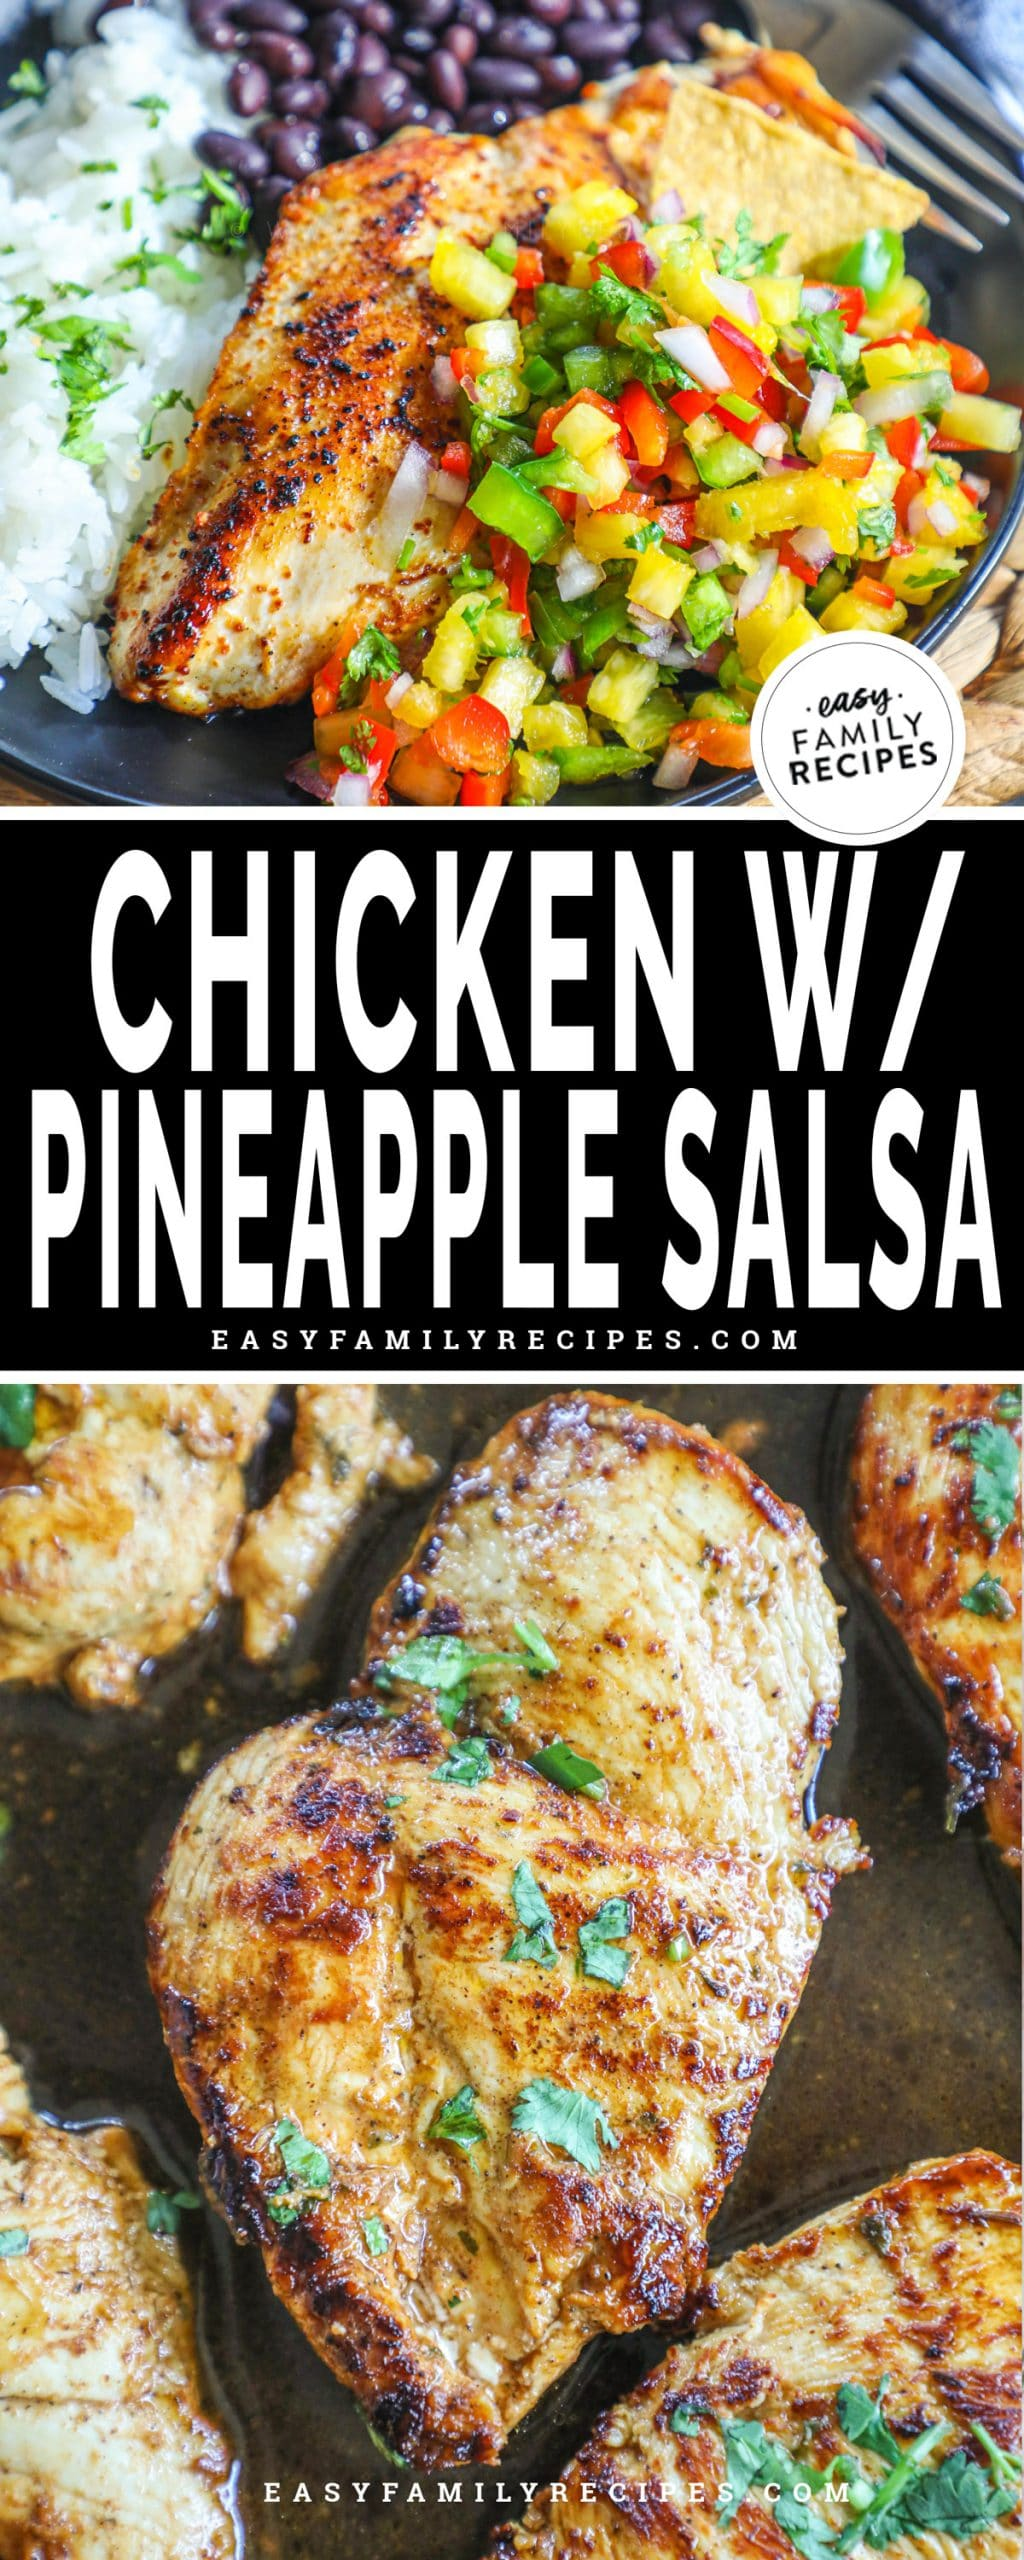 Southwest Chicken breast topped with pineapple salsa